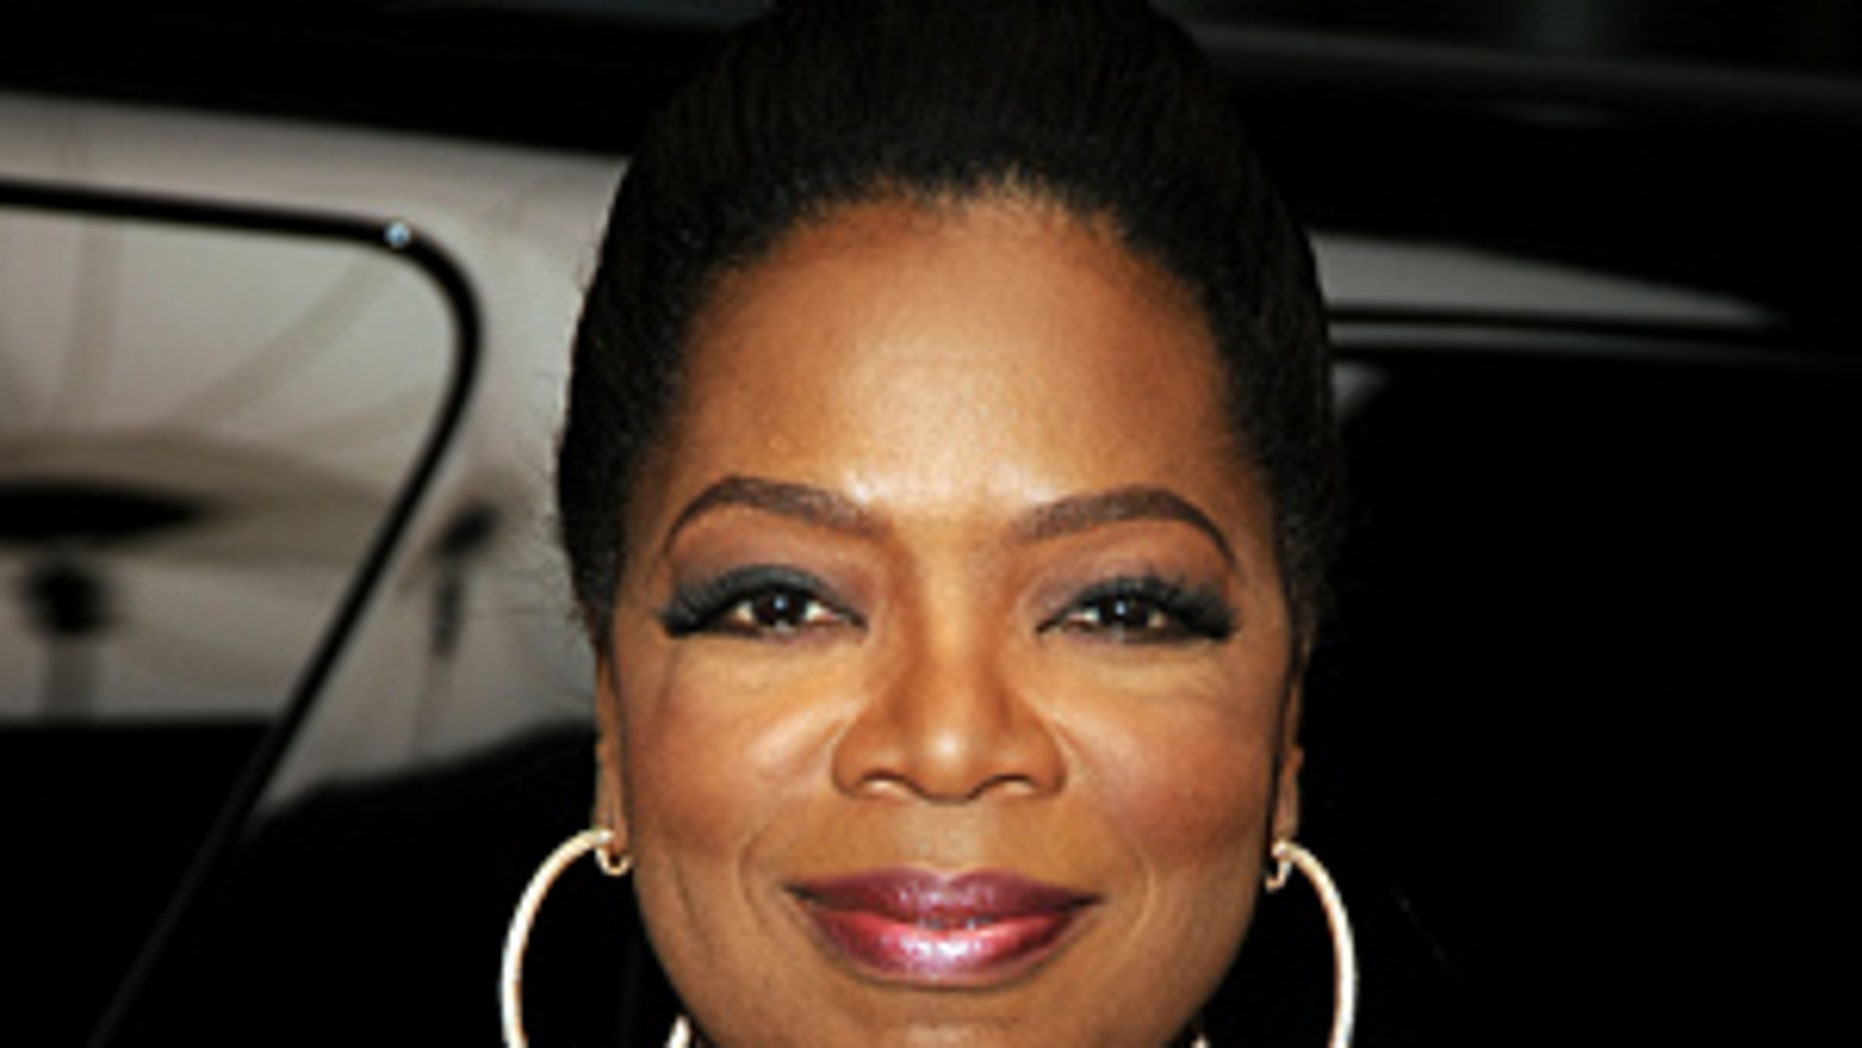 """TORONTO, ON - SEPTEMBER 13:  Executive producer Oprah Winfrey attends the """"Precious"""" Based On The Novel Push By Sapphire premiere at the Roy Thomson Hall during the 2009 Toronto International Film Festival on September 13, 2009 in Toronto, Canada.  (Photo by George Pimentel/WireImage)"""